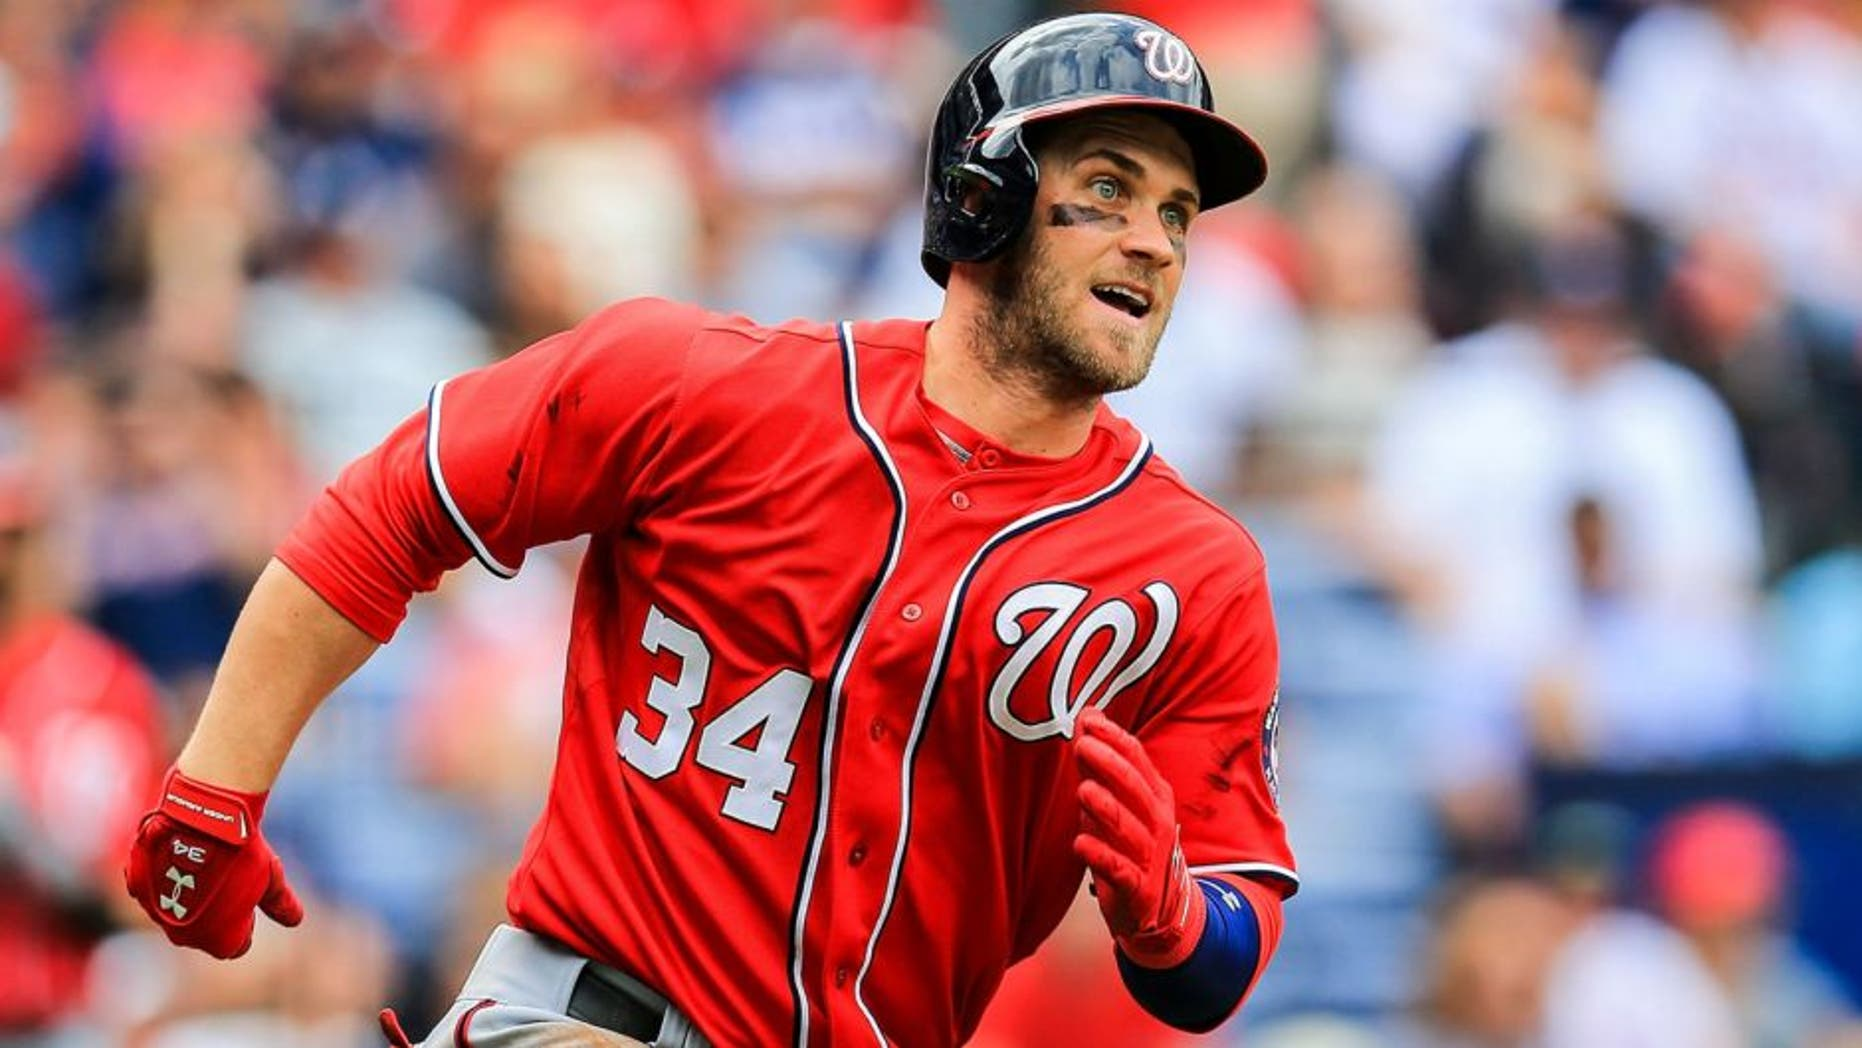 Apr 13, 2014; Atlanta, GA, USA; Washington Nationals left fielder Bryce Harper (34) runs to first on a double in the sixth inning against the Atlanta Braves at Turner Field. Mandatory Credit: Daniel Shirey-USA TODAY Sports